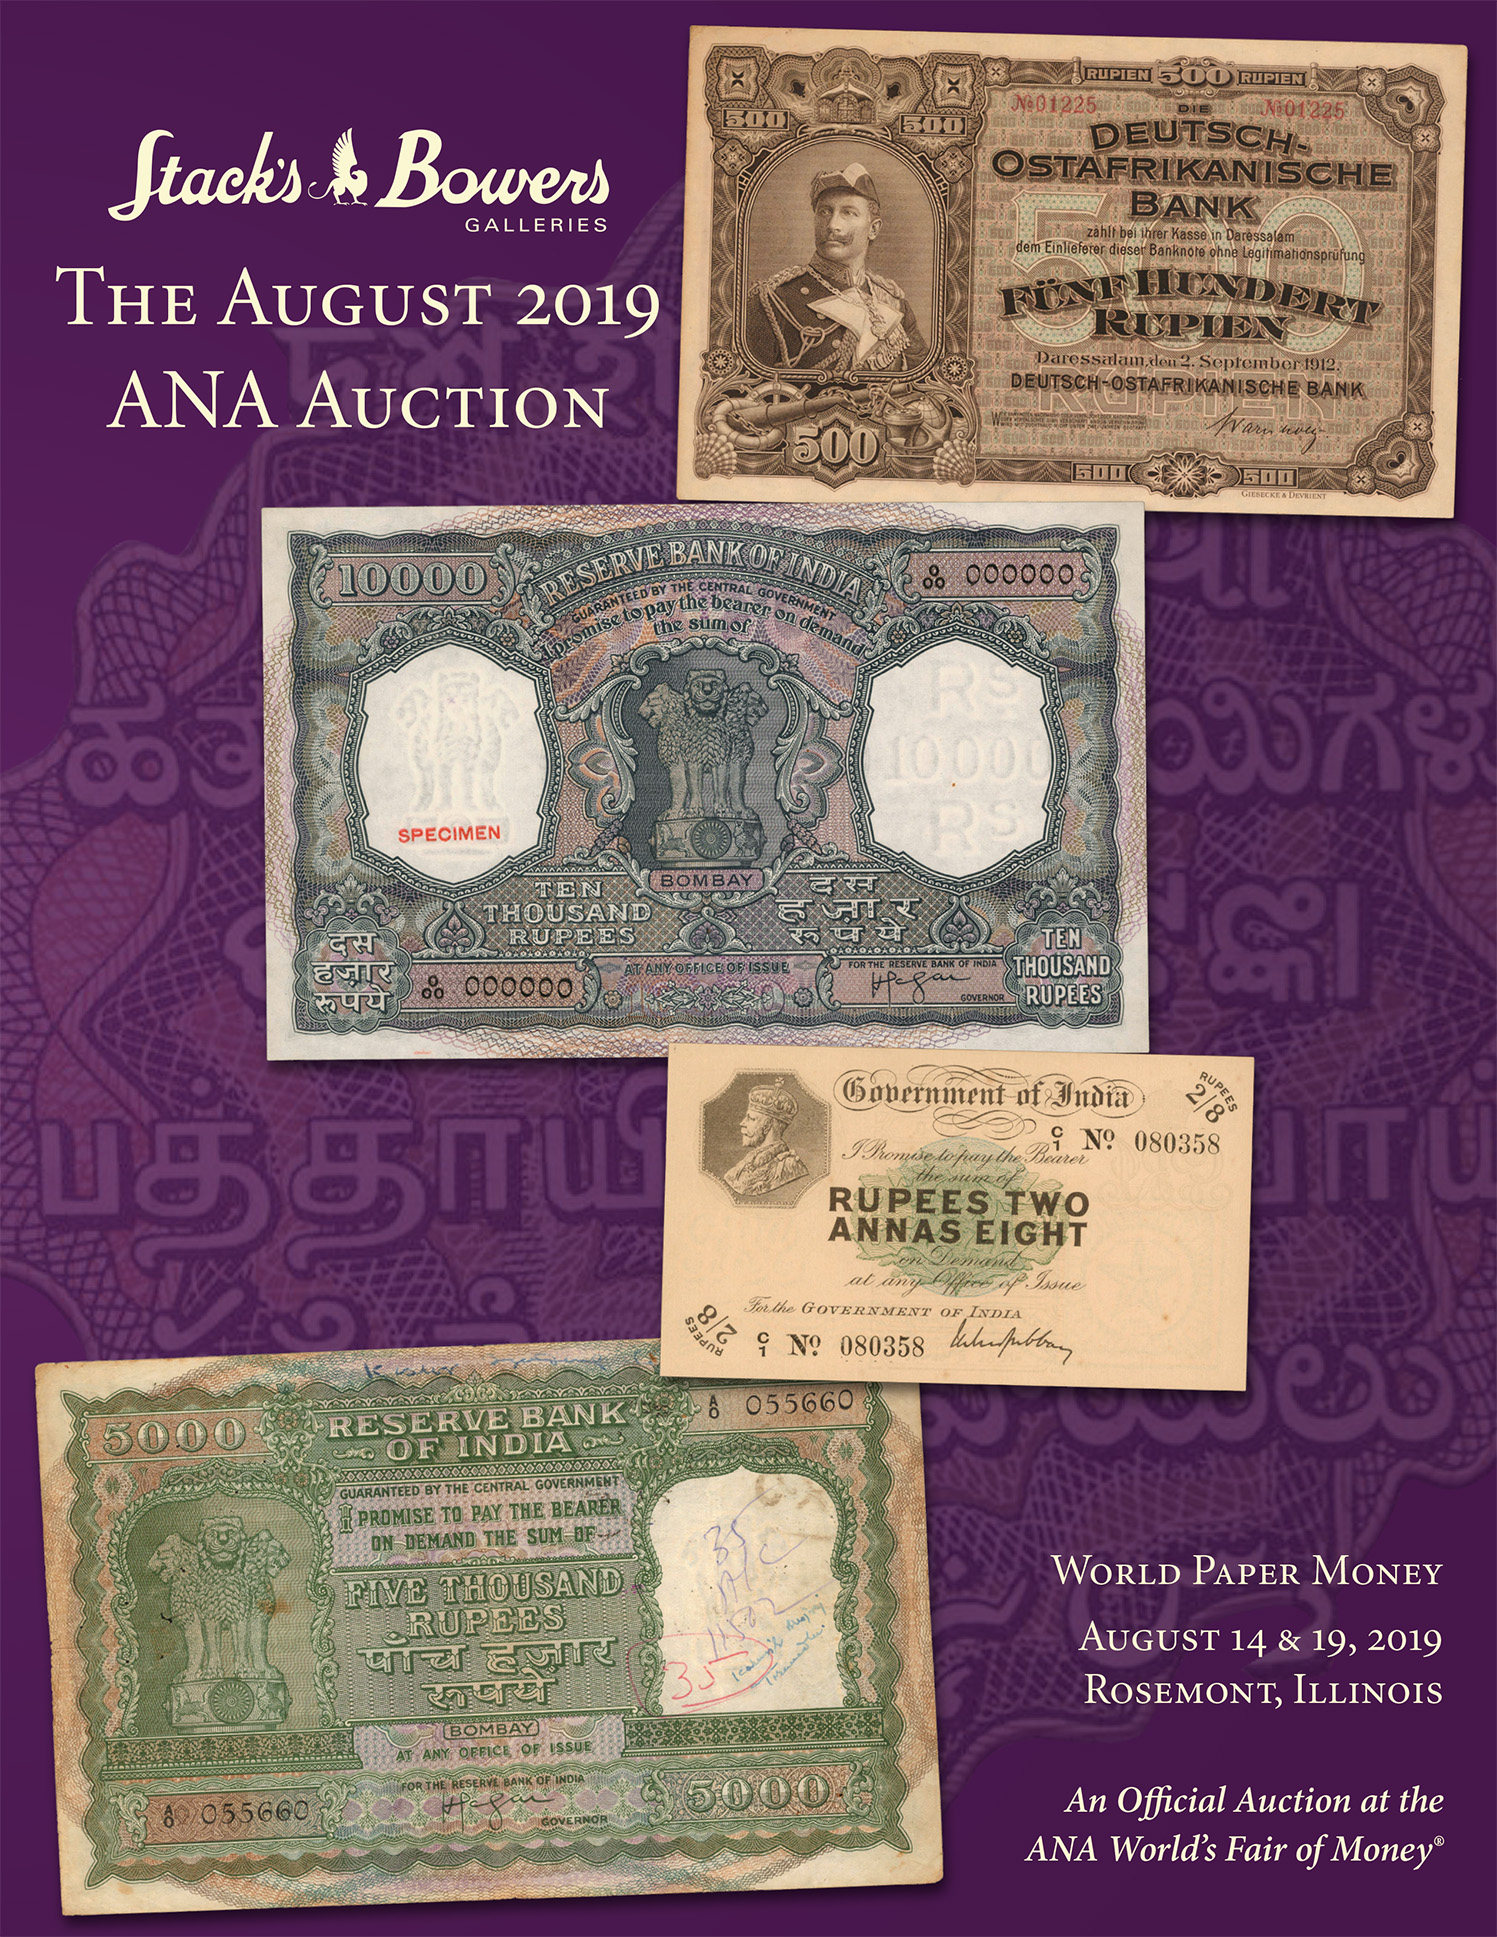 The August 2019 ANA World Paper Money Auction